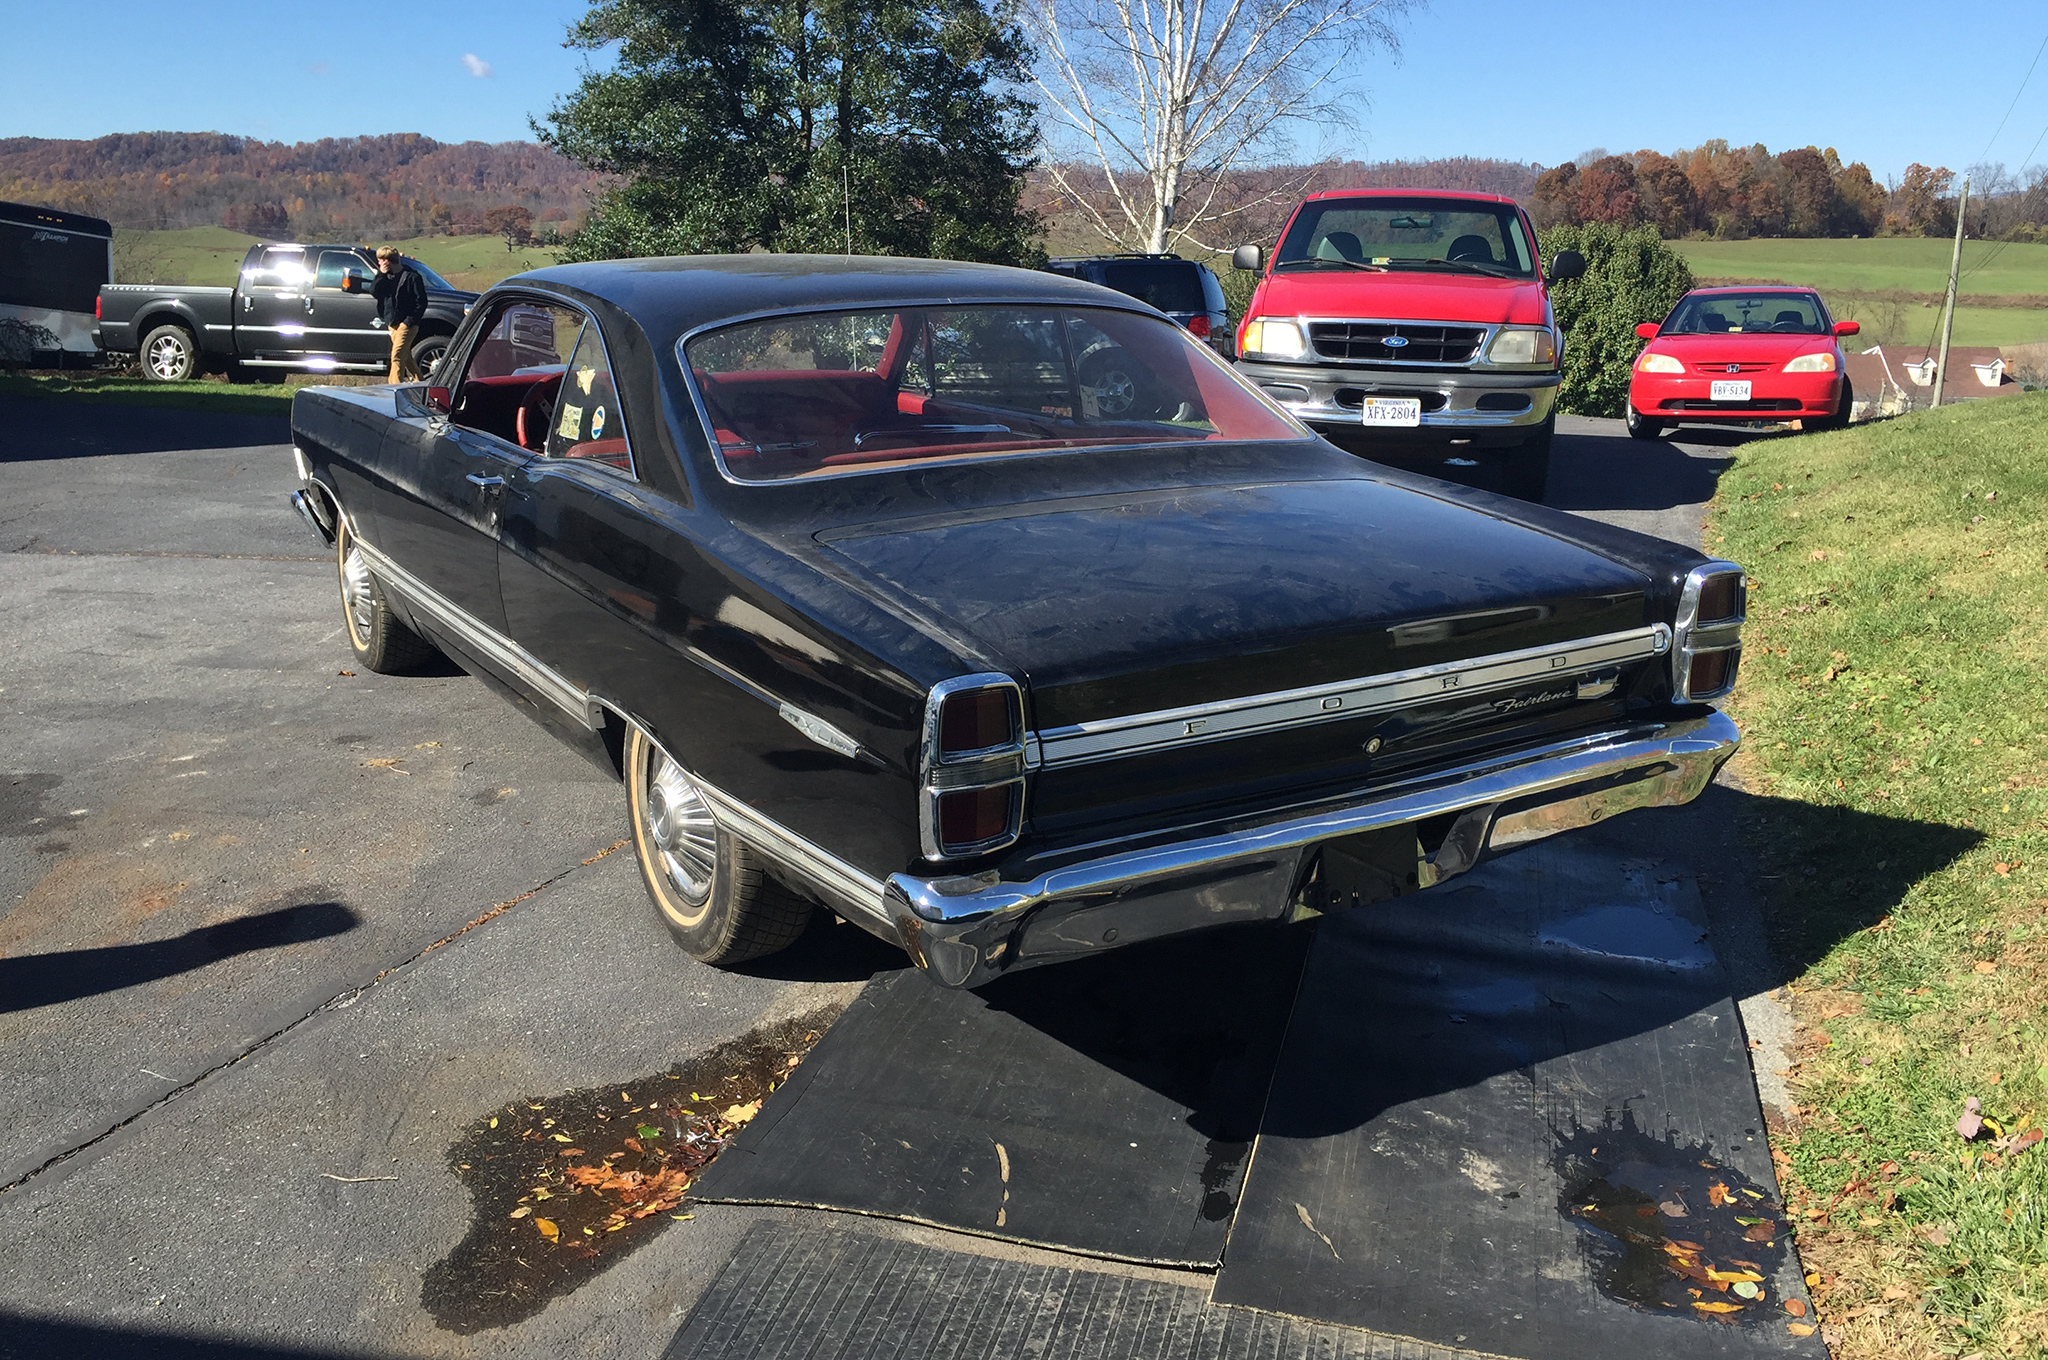 Ultra-Rare 1967 Ford Fairlane 427 Comes out of Hiding After